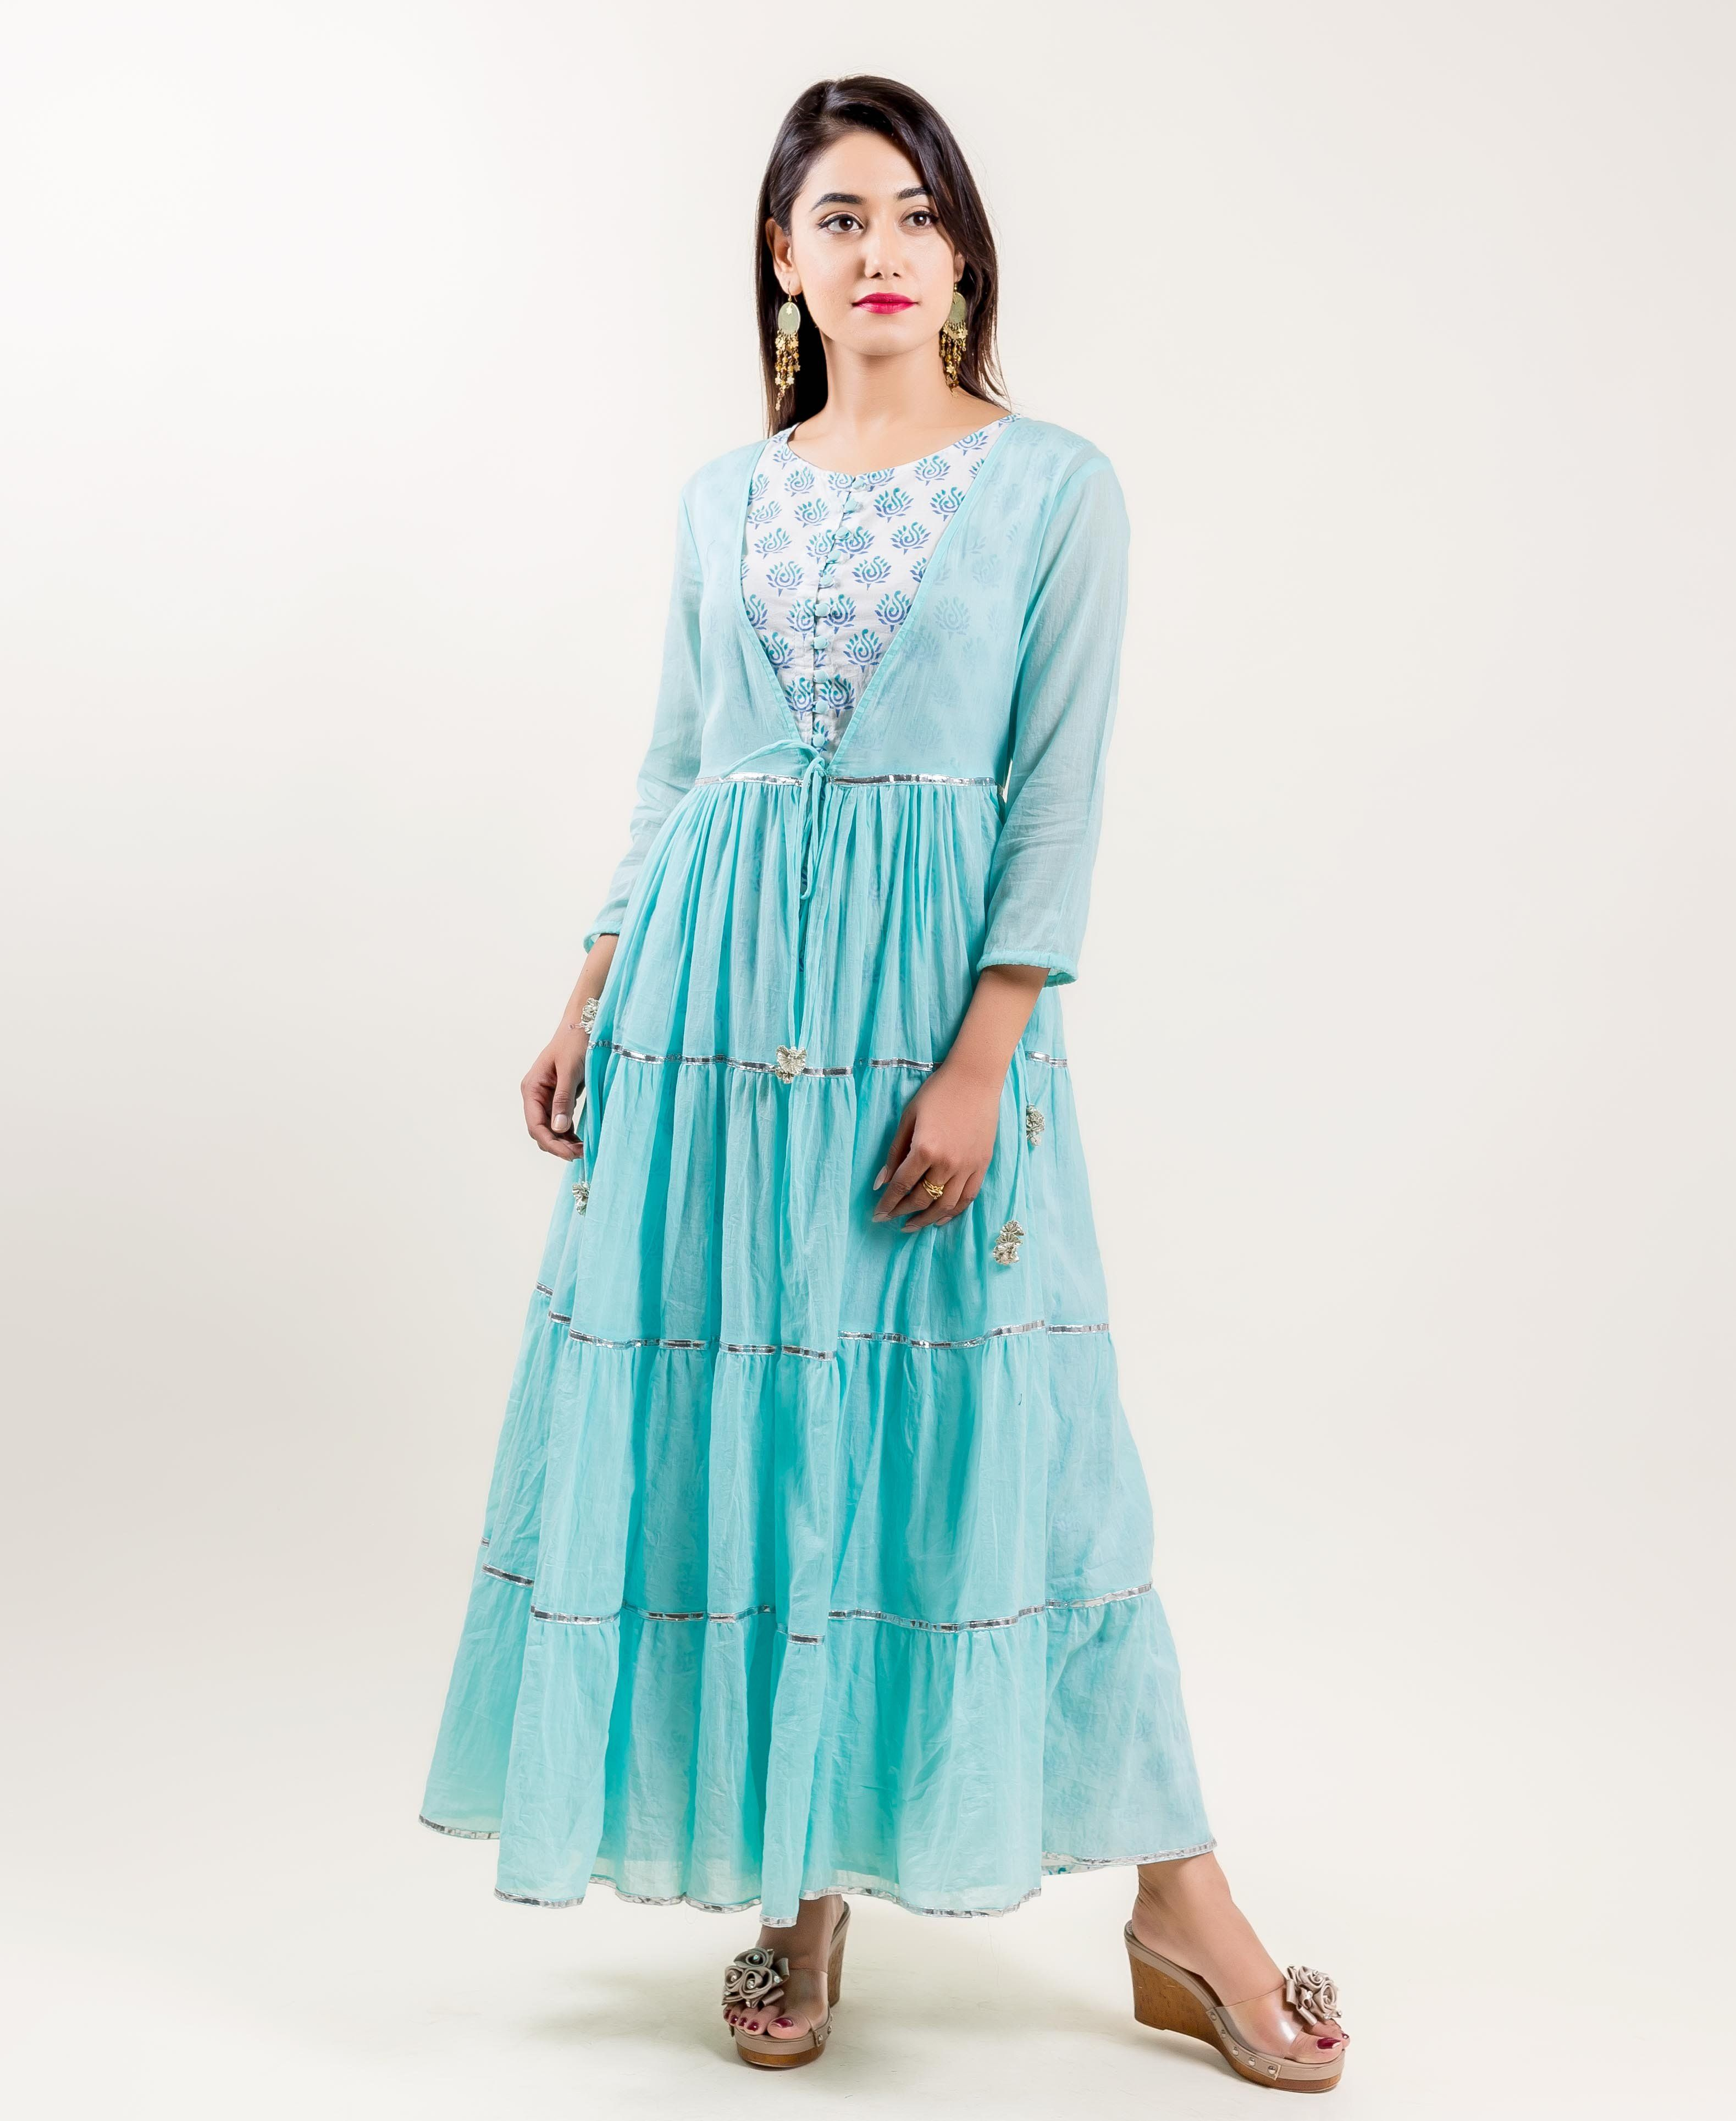 4f7cb42dce1a Aqua Cotton Tiered Indo Western Dress with Sleeveless inner in 2019 ...